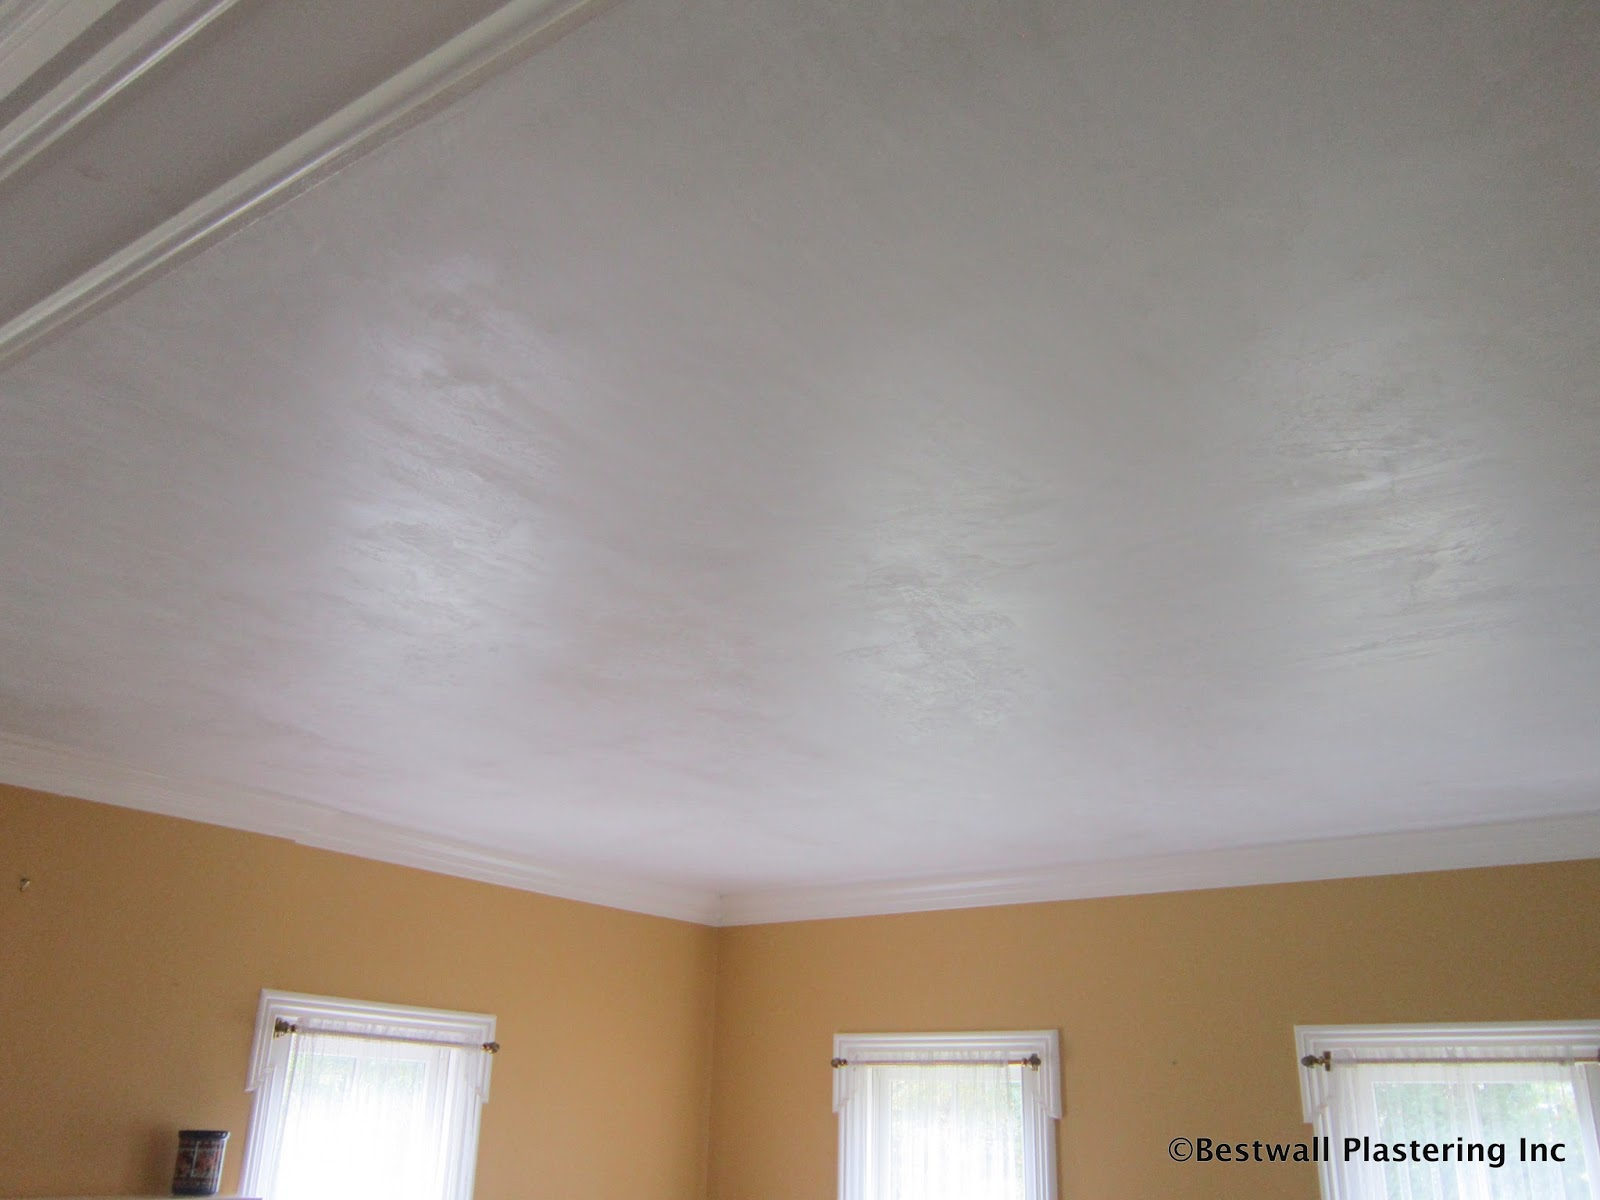 paiting home plaster wide plastering new in ceiling repair service range from painting a is brooklyn full interior company jobs img york walls of to residential affordable specializes the that